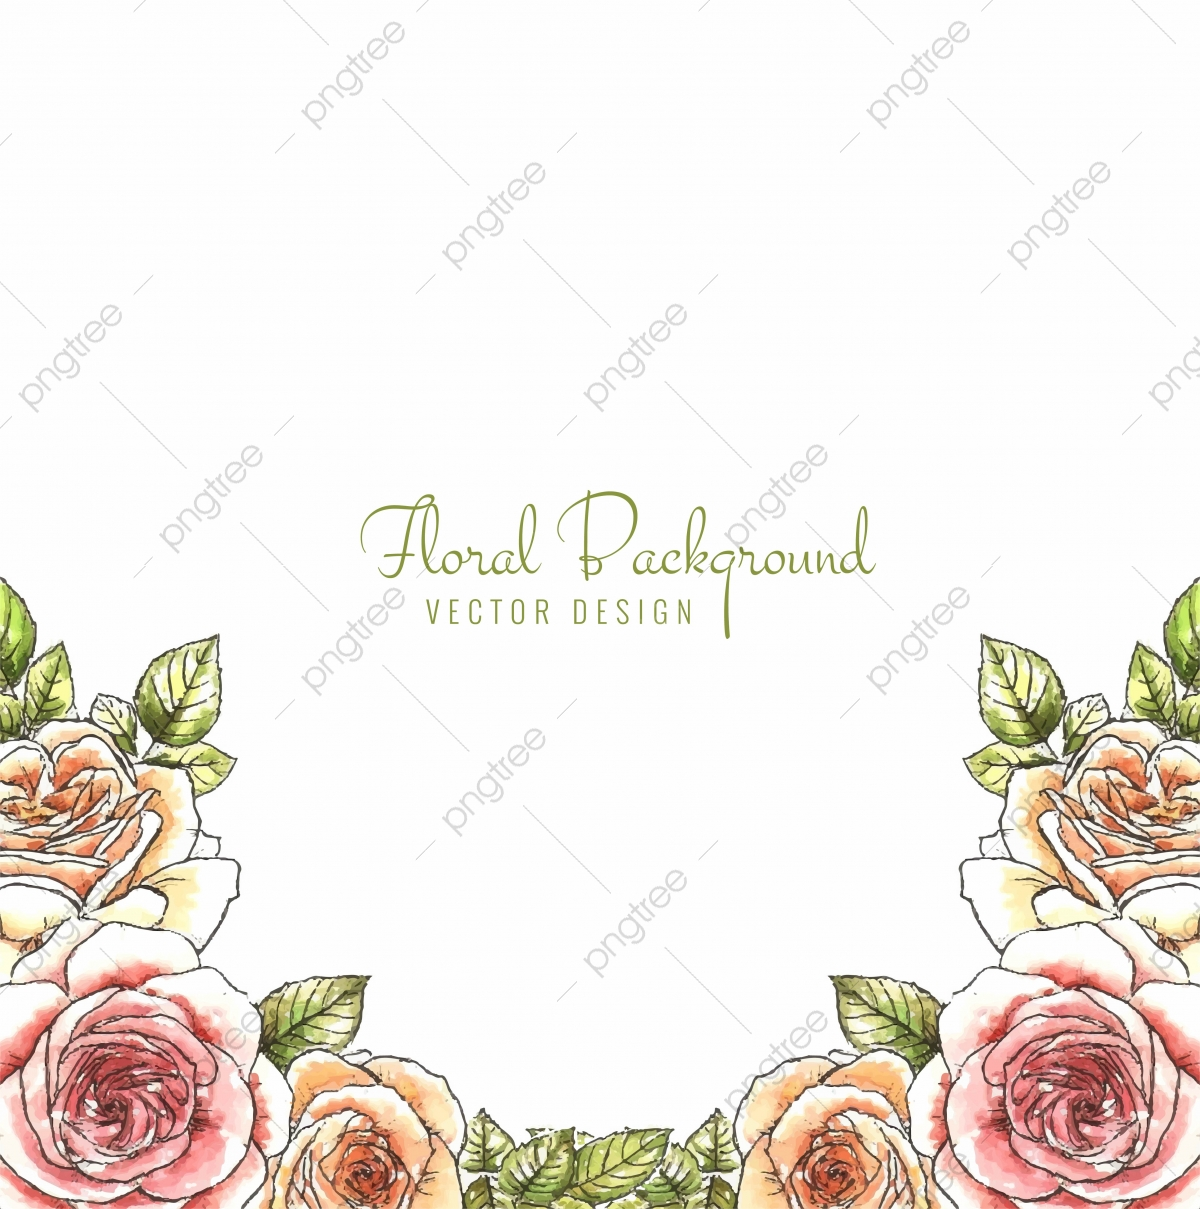 Decorative Colorful Wedding Anniversary Flowers Background Vector Abstract Wedding Invitation Png And Vector With Transparent Background For Free Download